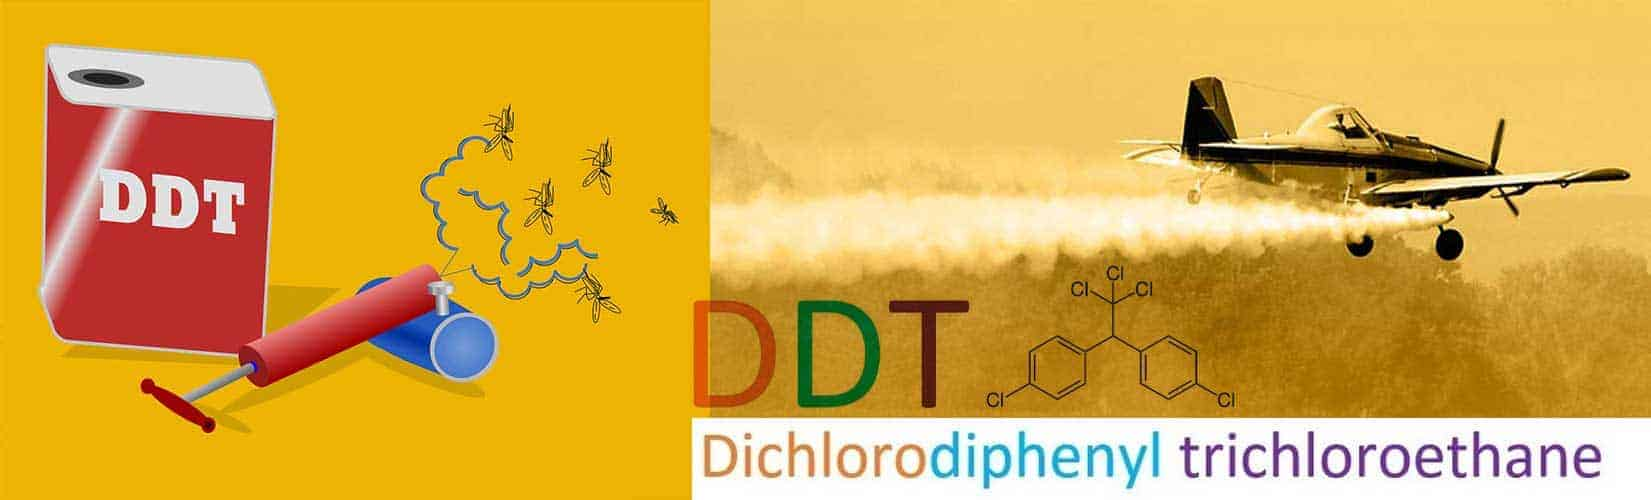 What is DDT And Why has its use been banned